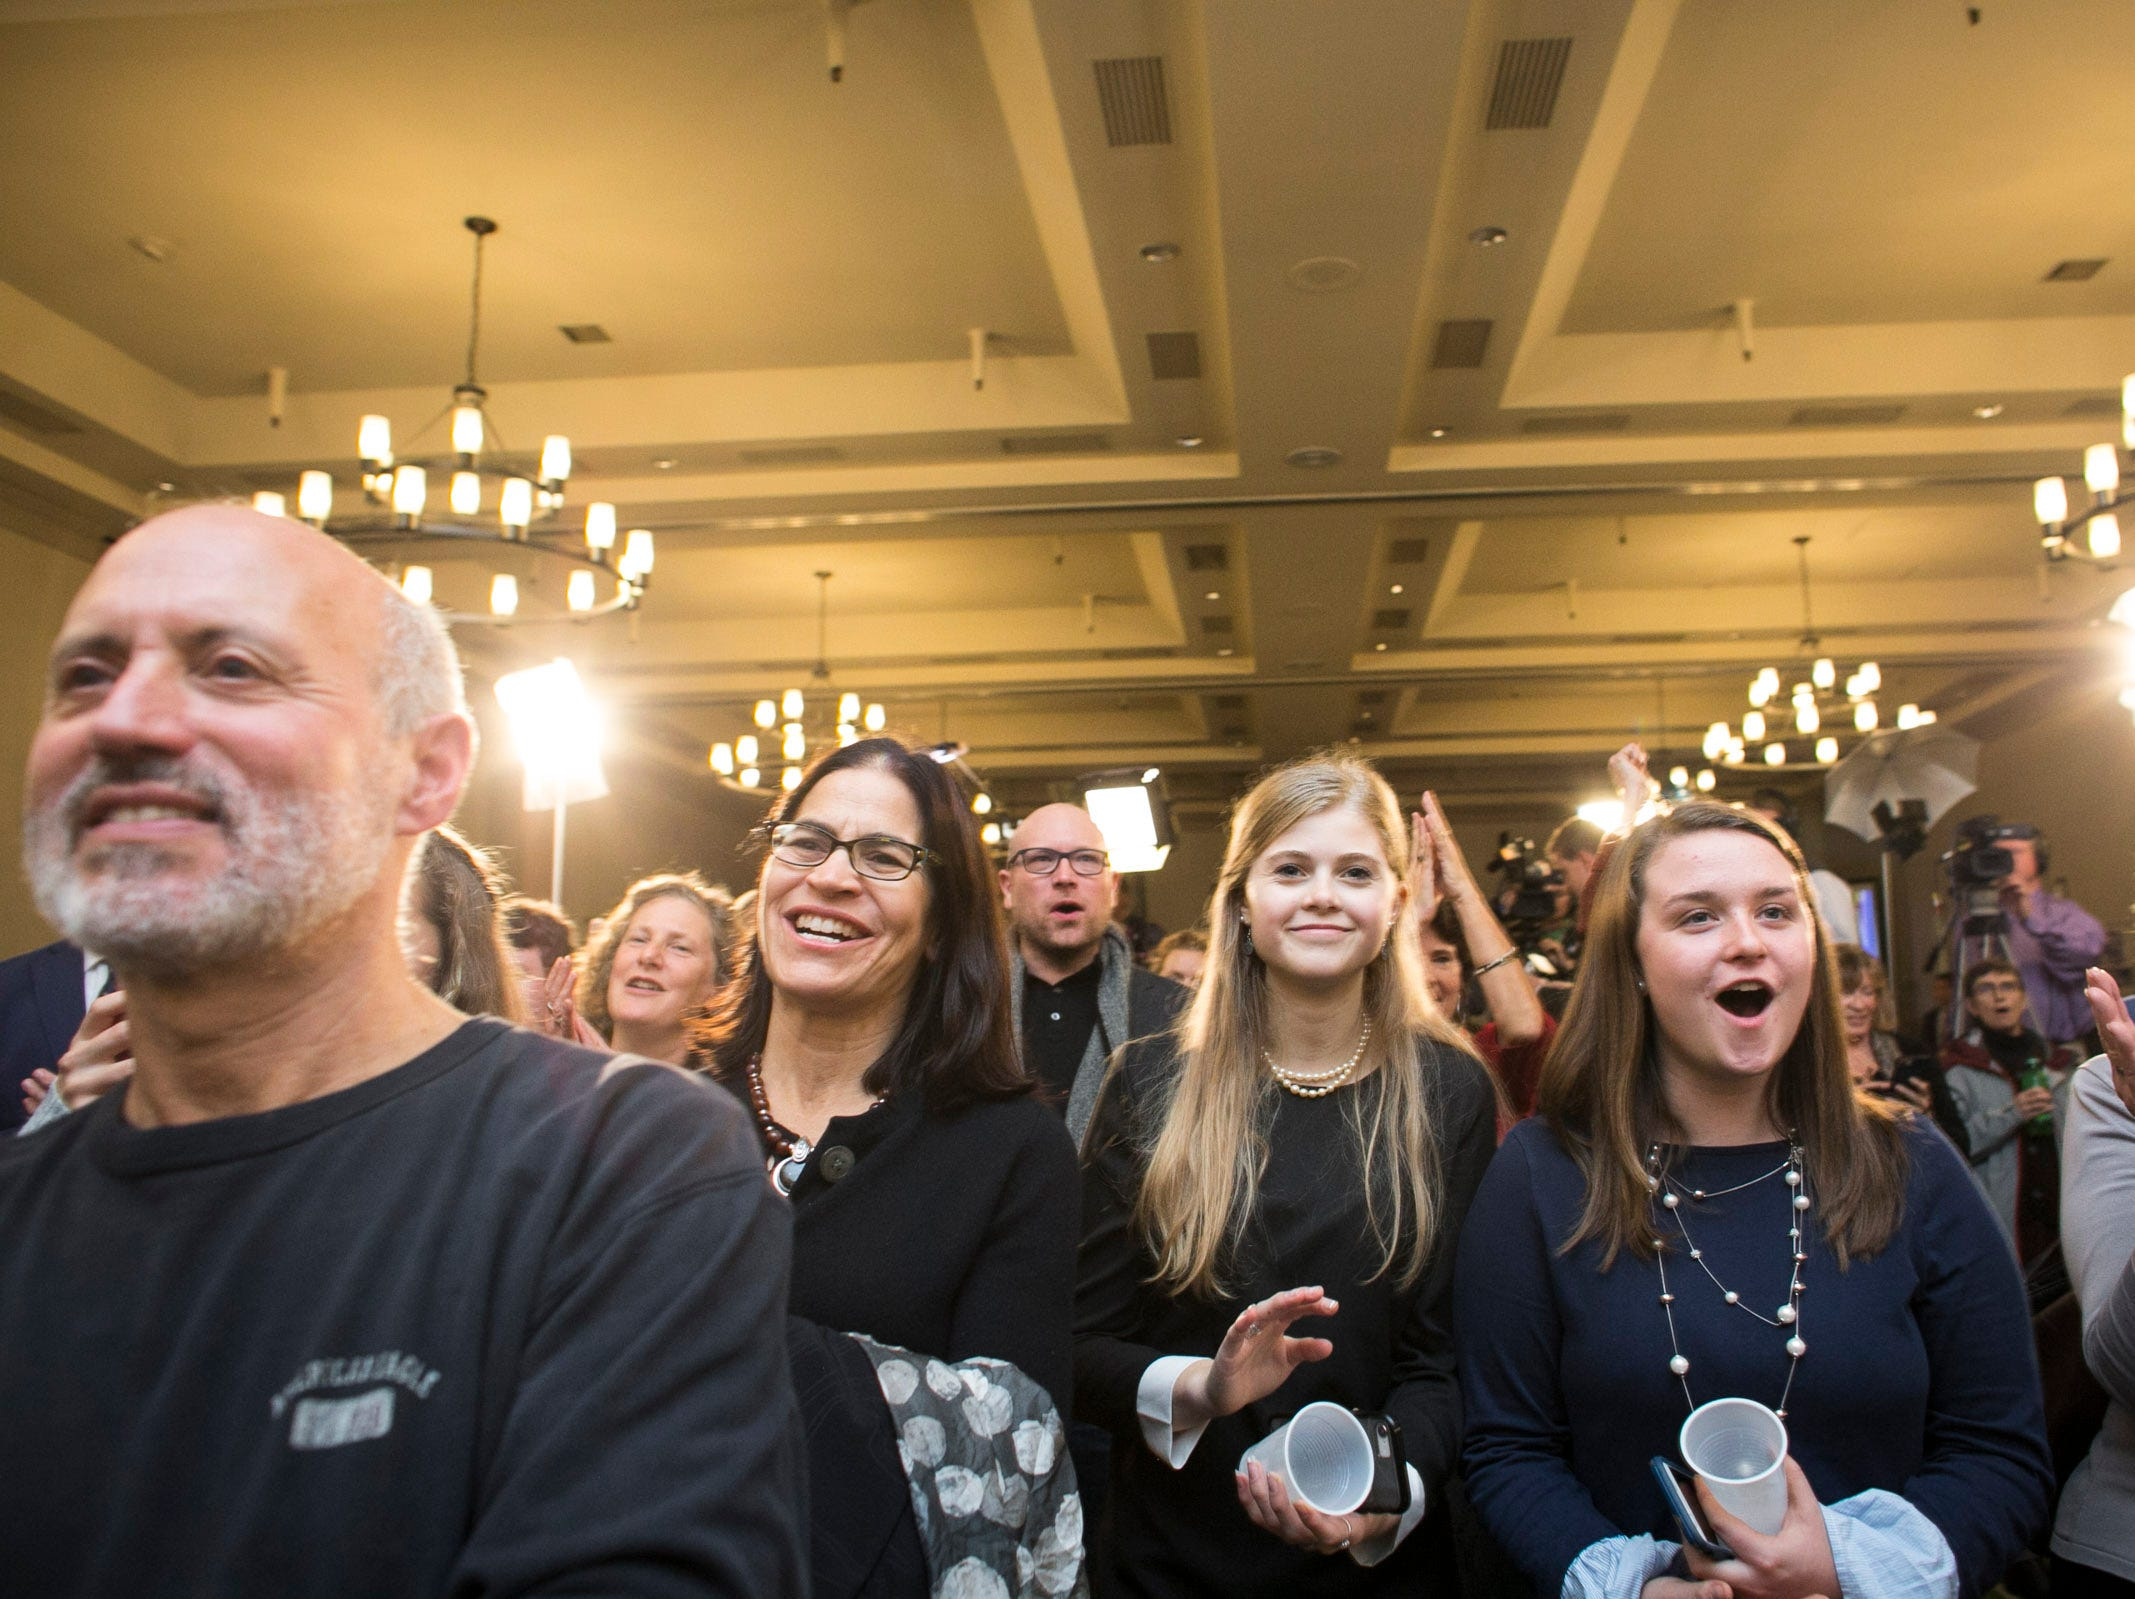 Onlookers cheer as Sen. Patrick Leahy takes the stage at the Hilton in Burlington, Vermont on Tuesday, November 6, 2018.